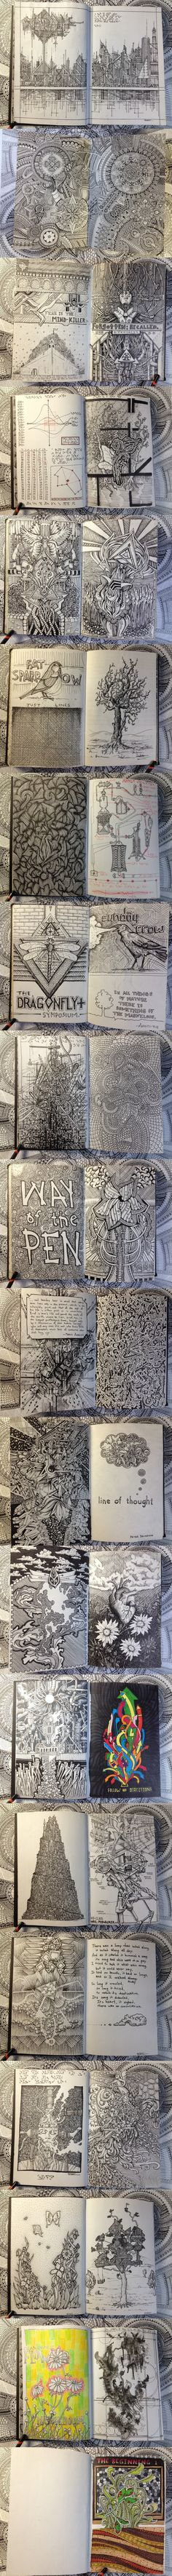 Awesome drawing book.